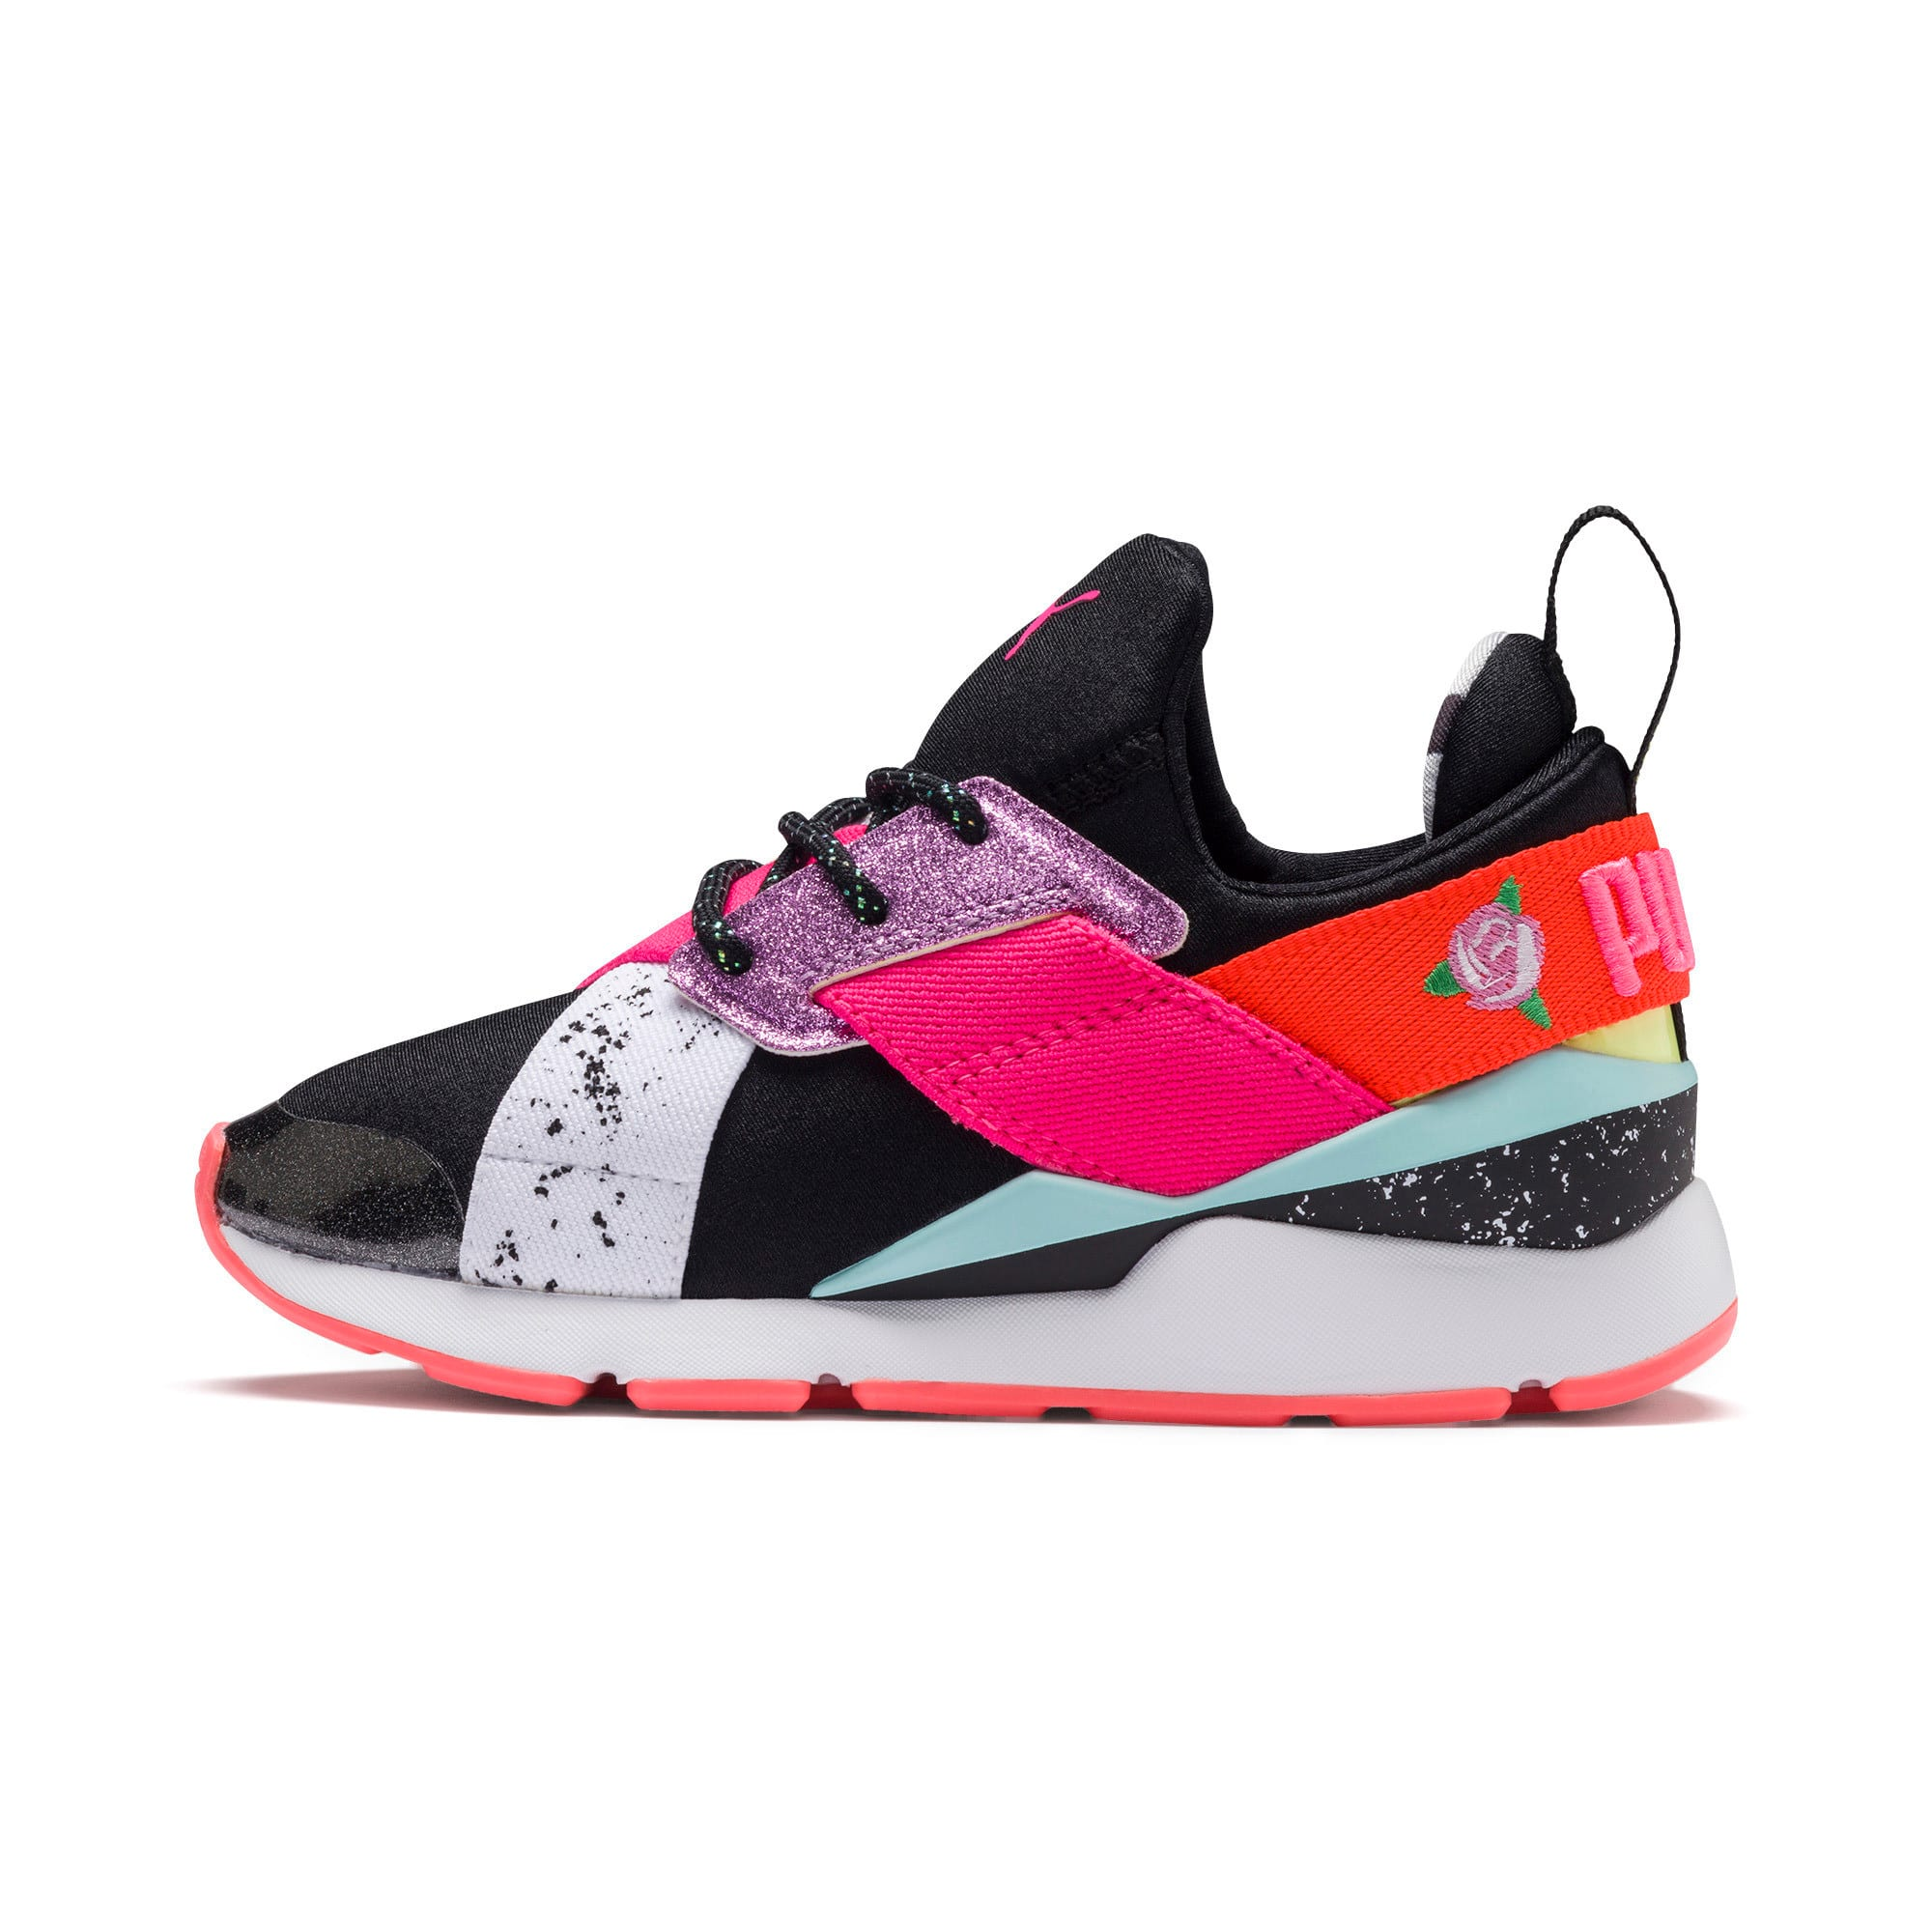 Thumbnail 1 of PUMA x SOPHIA WEBSTER Muse Little Kids' Shoes, Puma Black-Puma White, medium